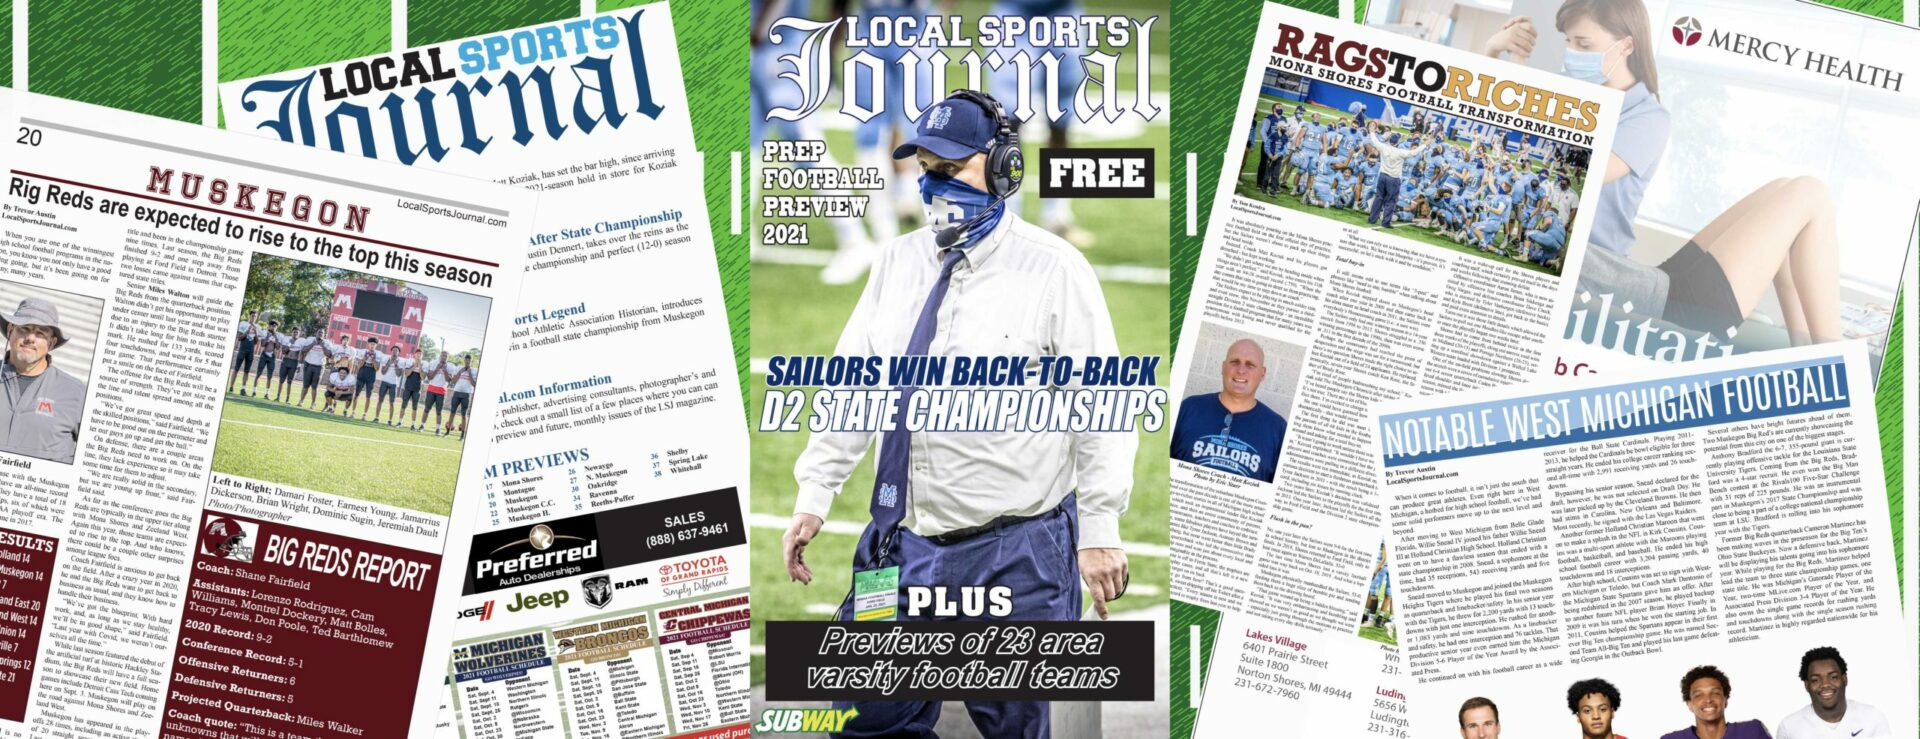 LSJ's 2021 High School Football Preview hitting news stands today!